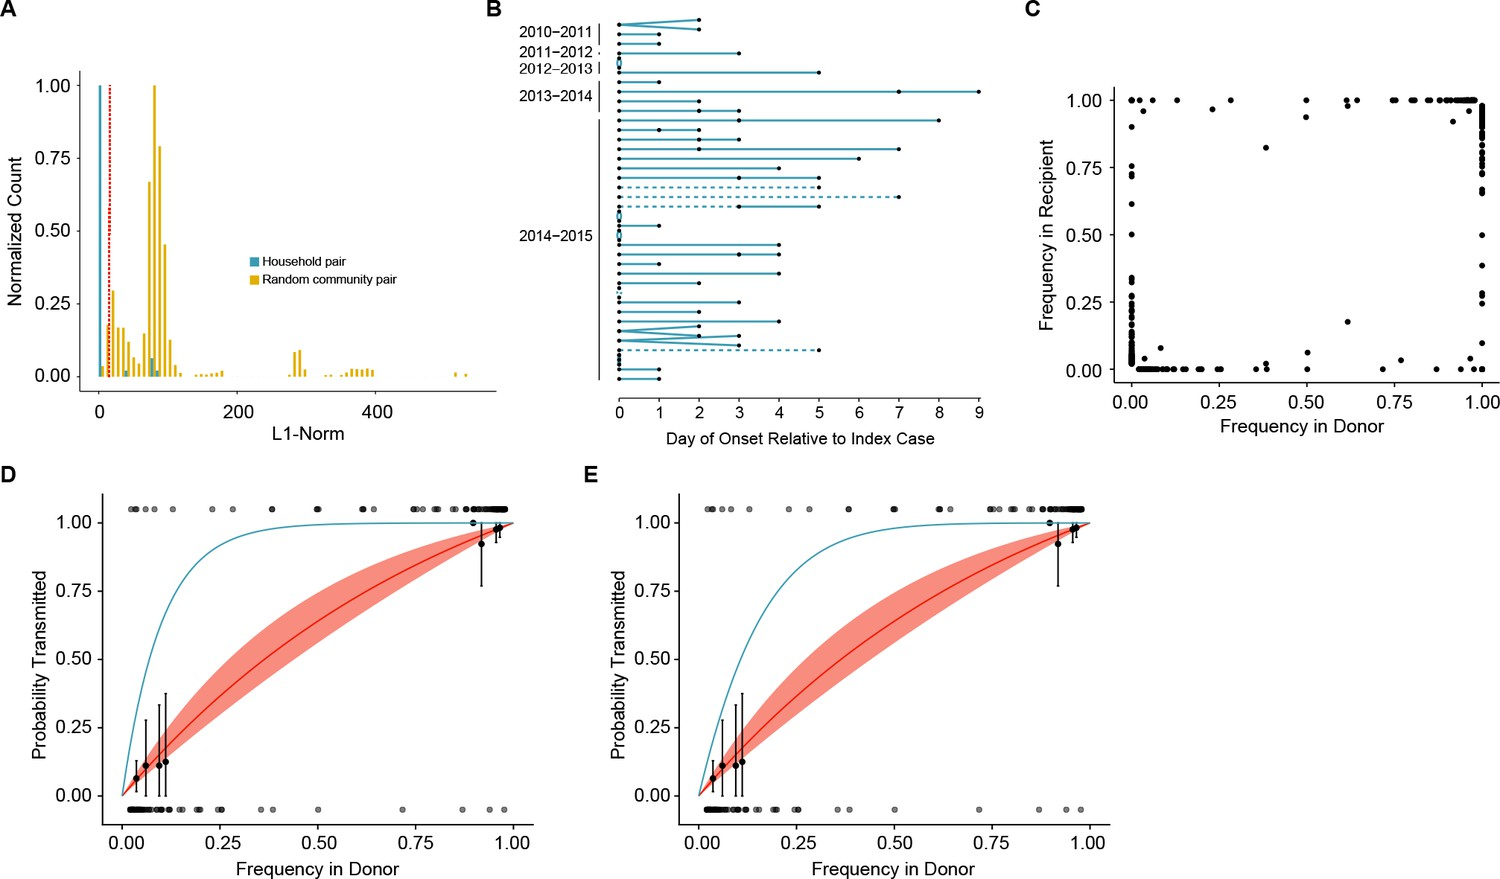 Stochastic processes constrain the within and between host evolution